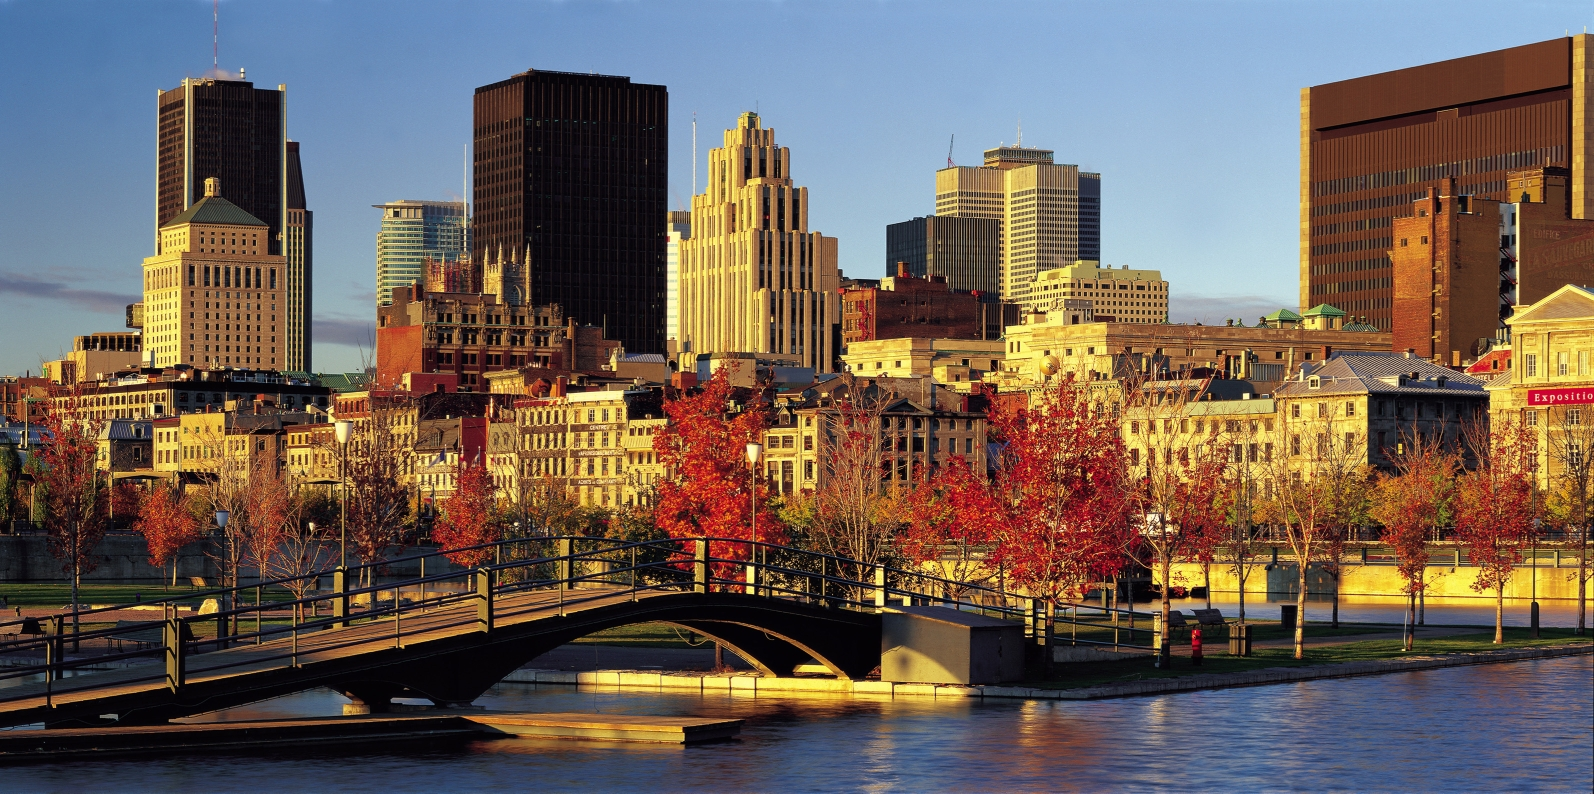 Quebec Montreal The Heartland Ontario And Quebec Lessons Tes Teach